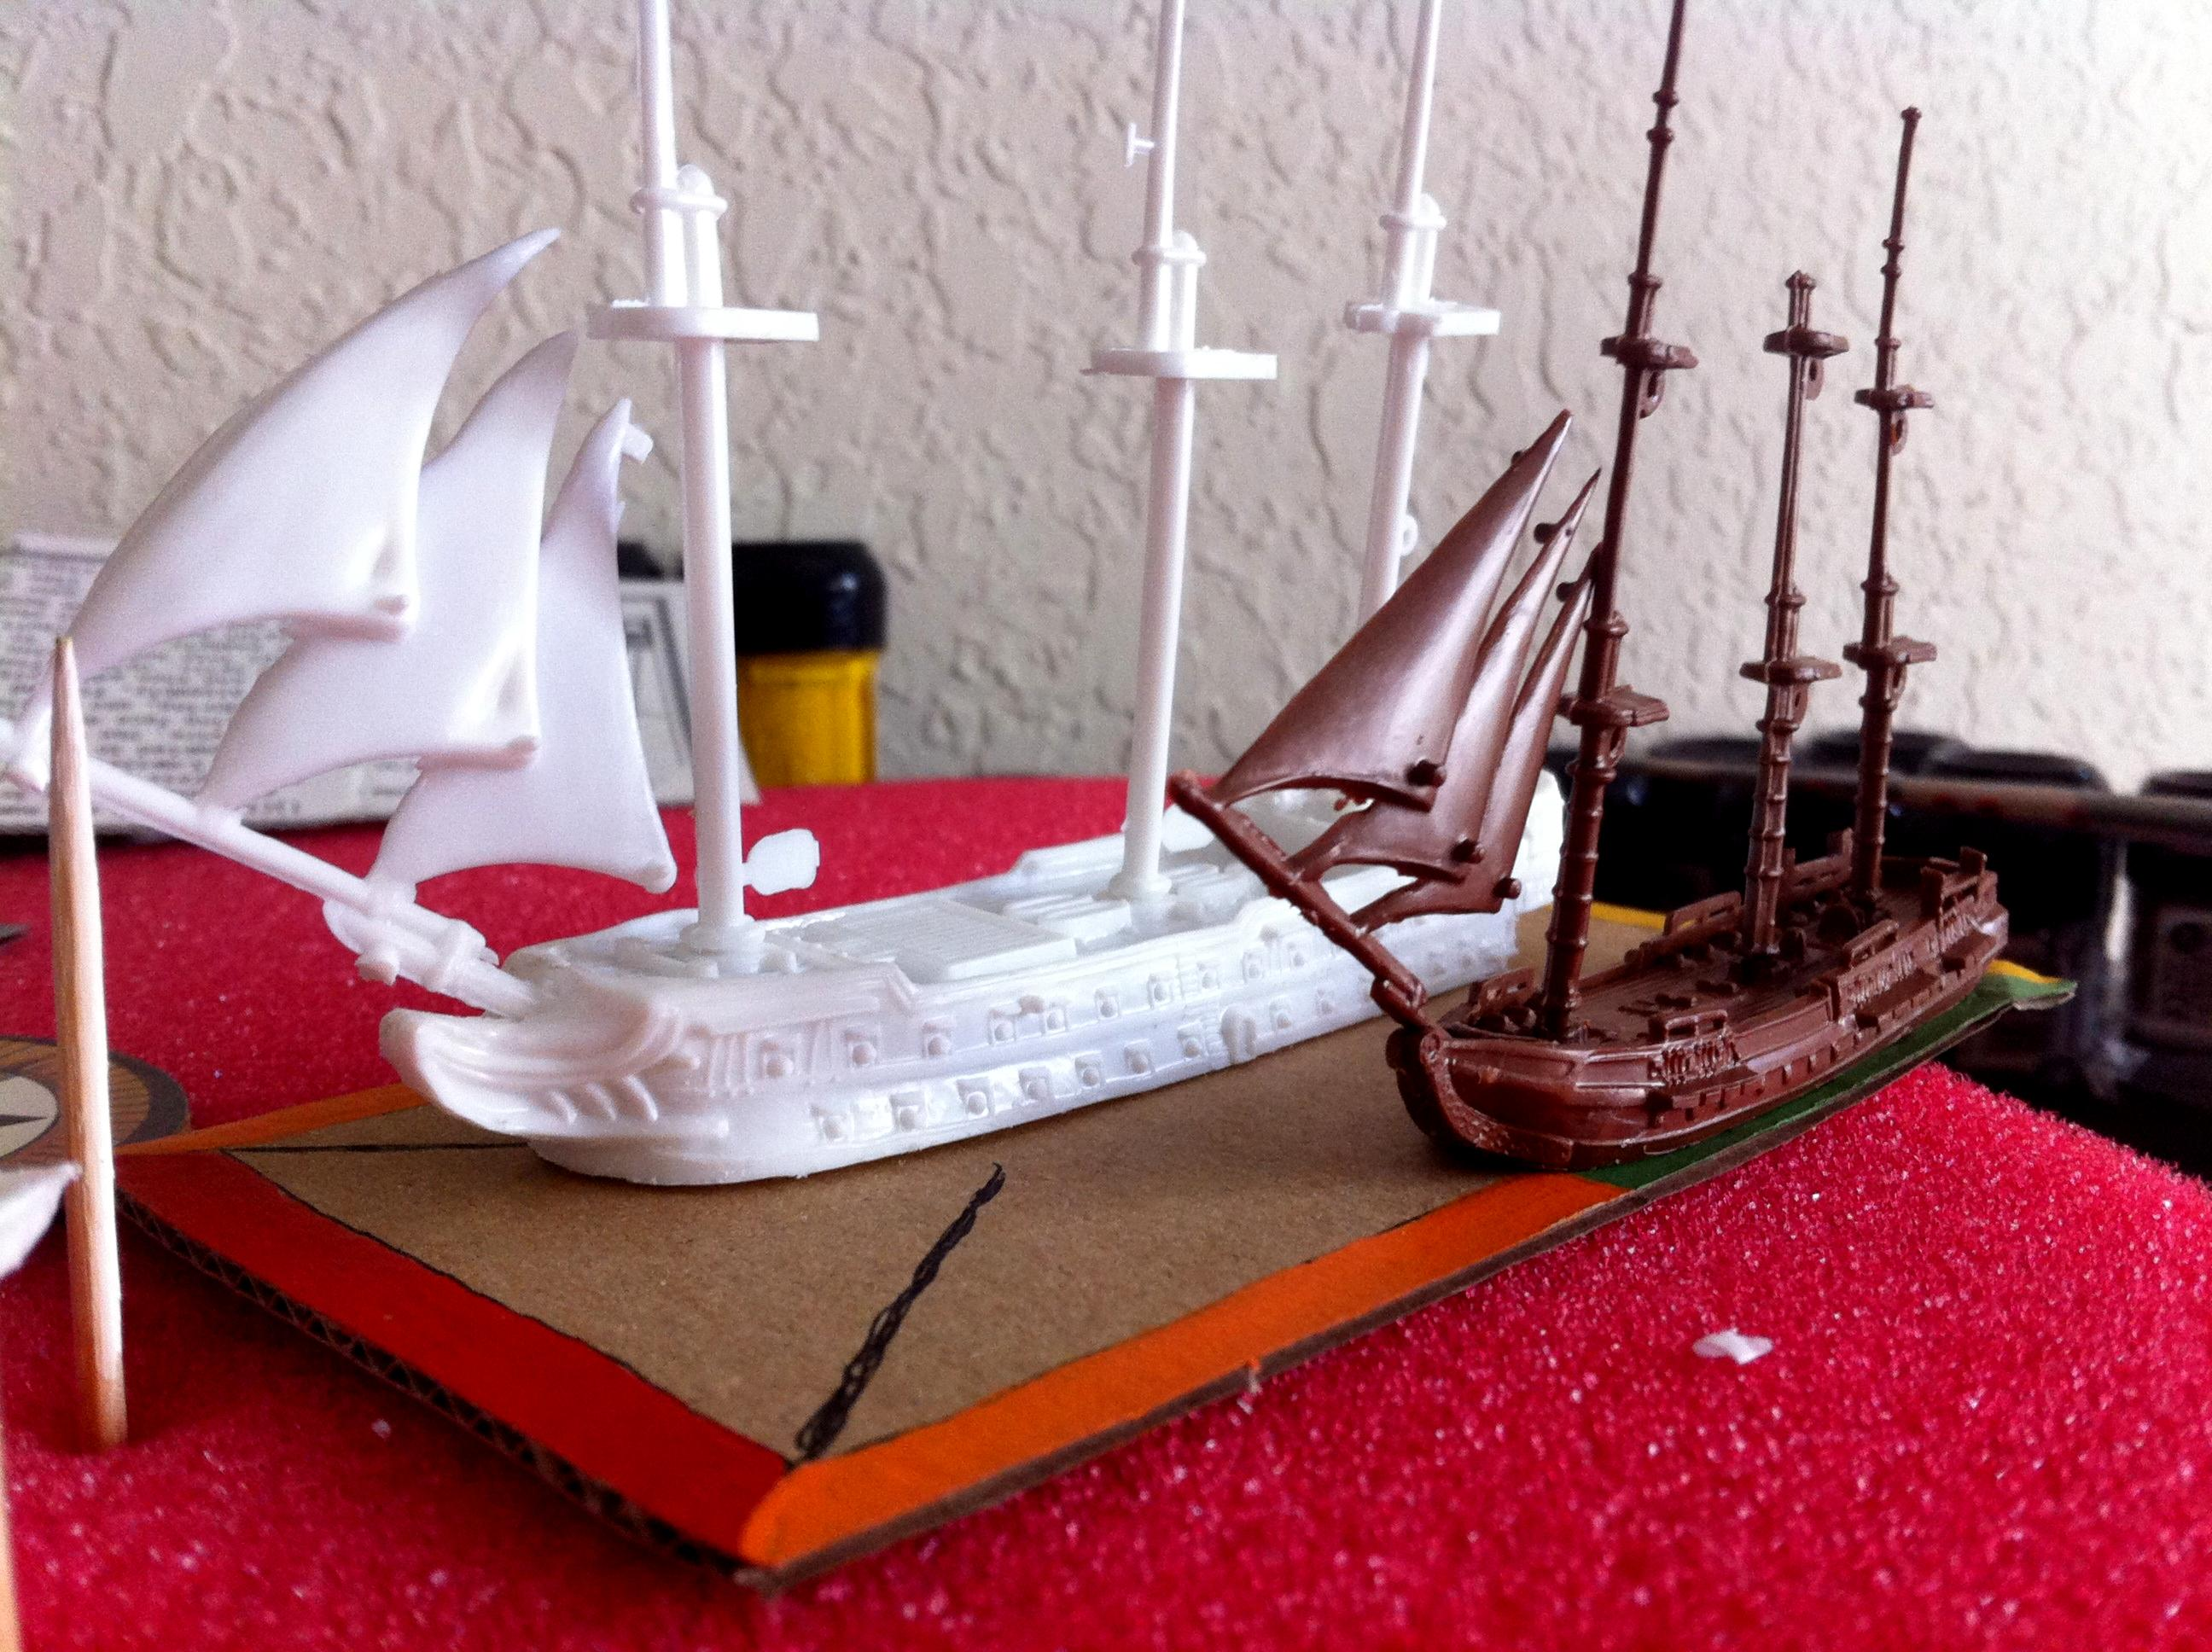 1/600 Age Of Sail, 1/600 Napoleonic, 1/600 Ship, Age Of Sail, Airfix 1/600 Hms Victory, Boat, Historical, Hms Victory, Miniature Wargames, Miniatures, Napoleonic, Napoleonic Navel, Napoleonic Ship, Navel Miniatures, Navel Wargames, Plastic Ship Miniatures., Ship, Tabletop Wargames